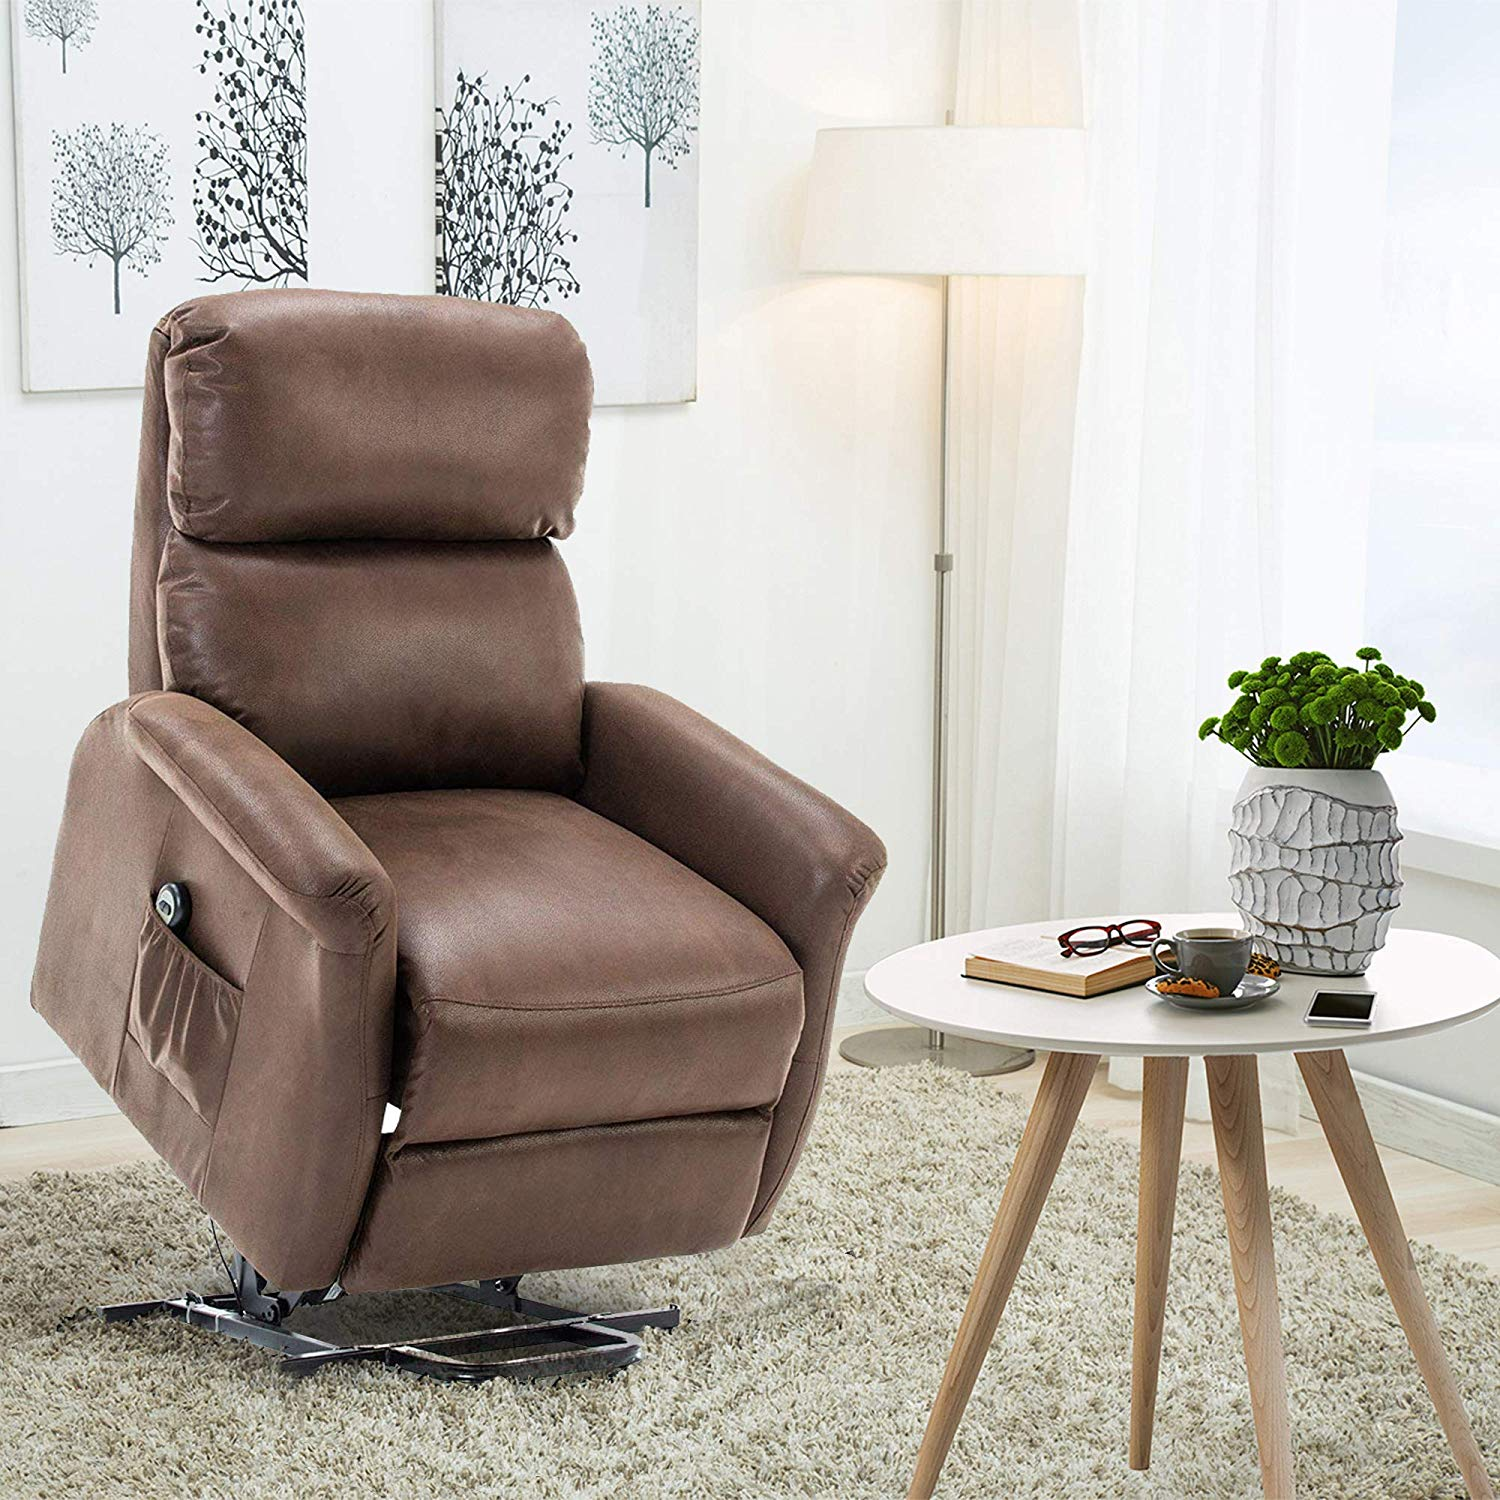 Top 10 Reclining Chairs For Elderly 2019 Reviews Amp Guide